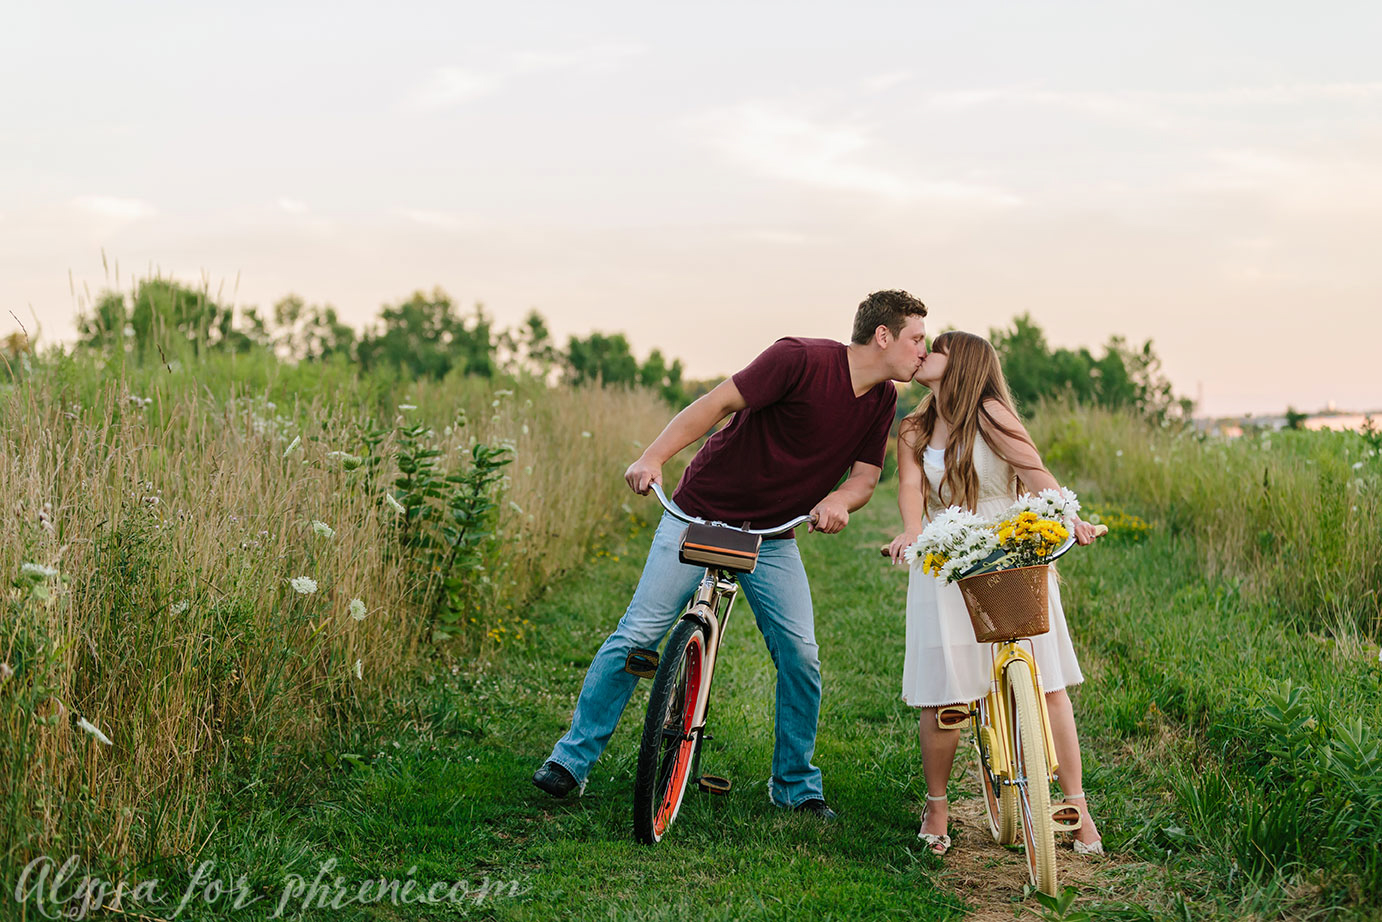 Grand_Rapids_Engagment_Photographer28.jpg